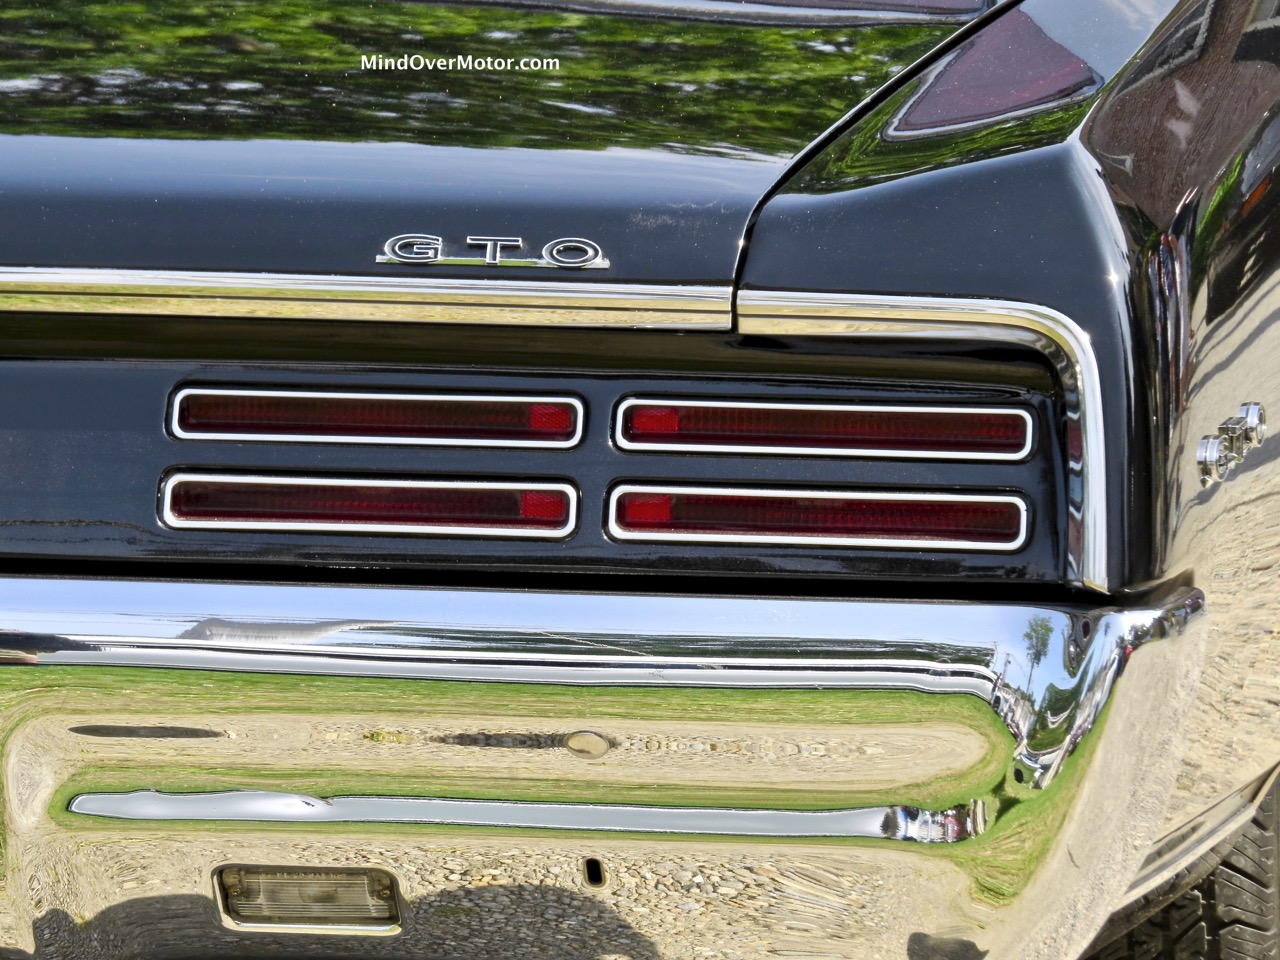 1967 Pontiac GTO Rear Badge